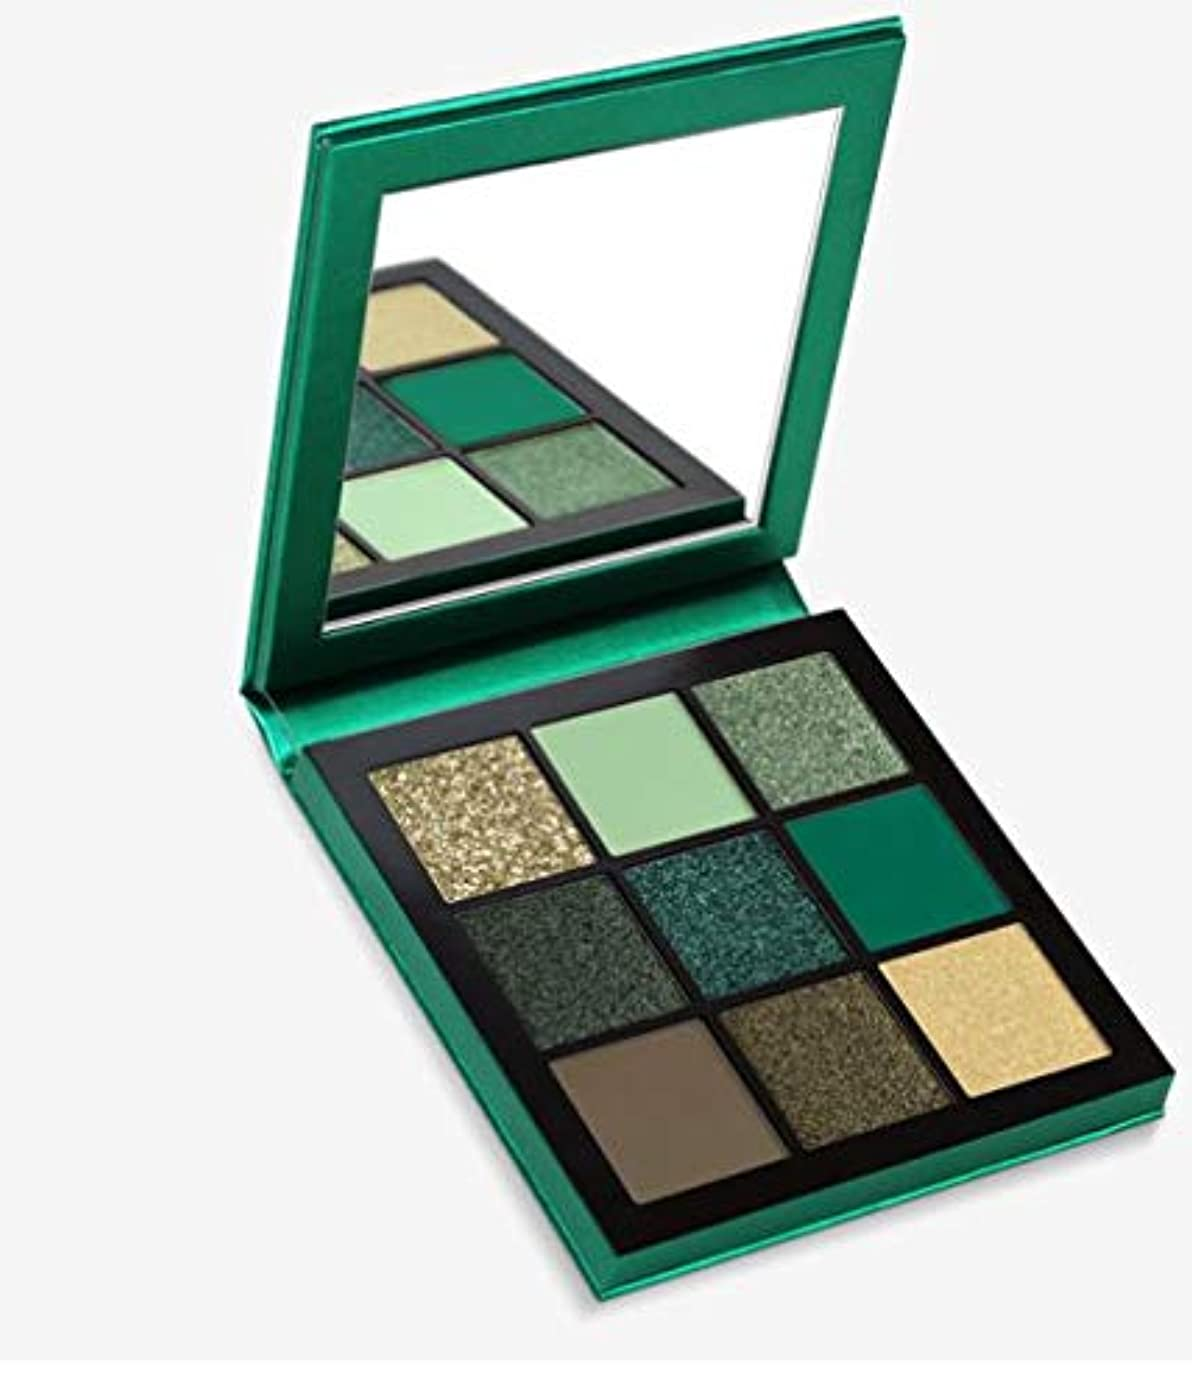 Hudabeauty Obsessions Eyeshadow Palette Emerald アイシャドウパレット